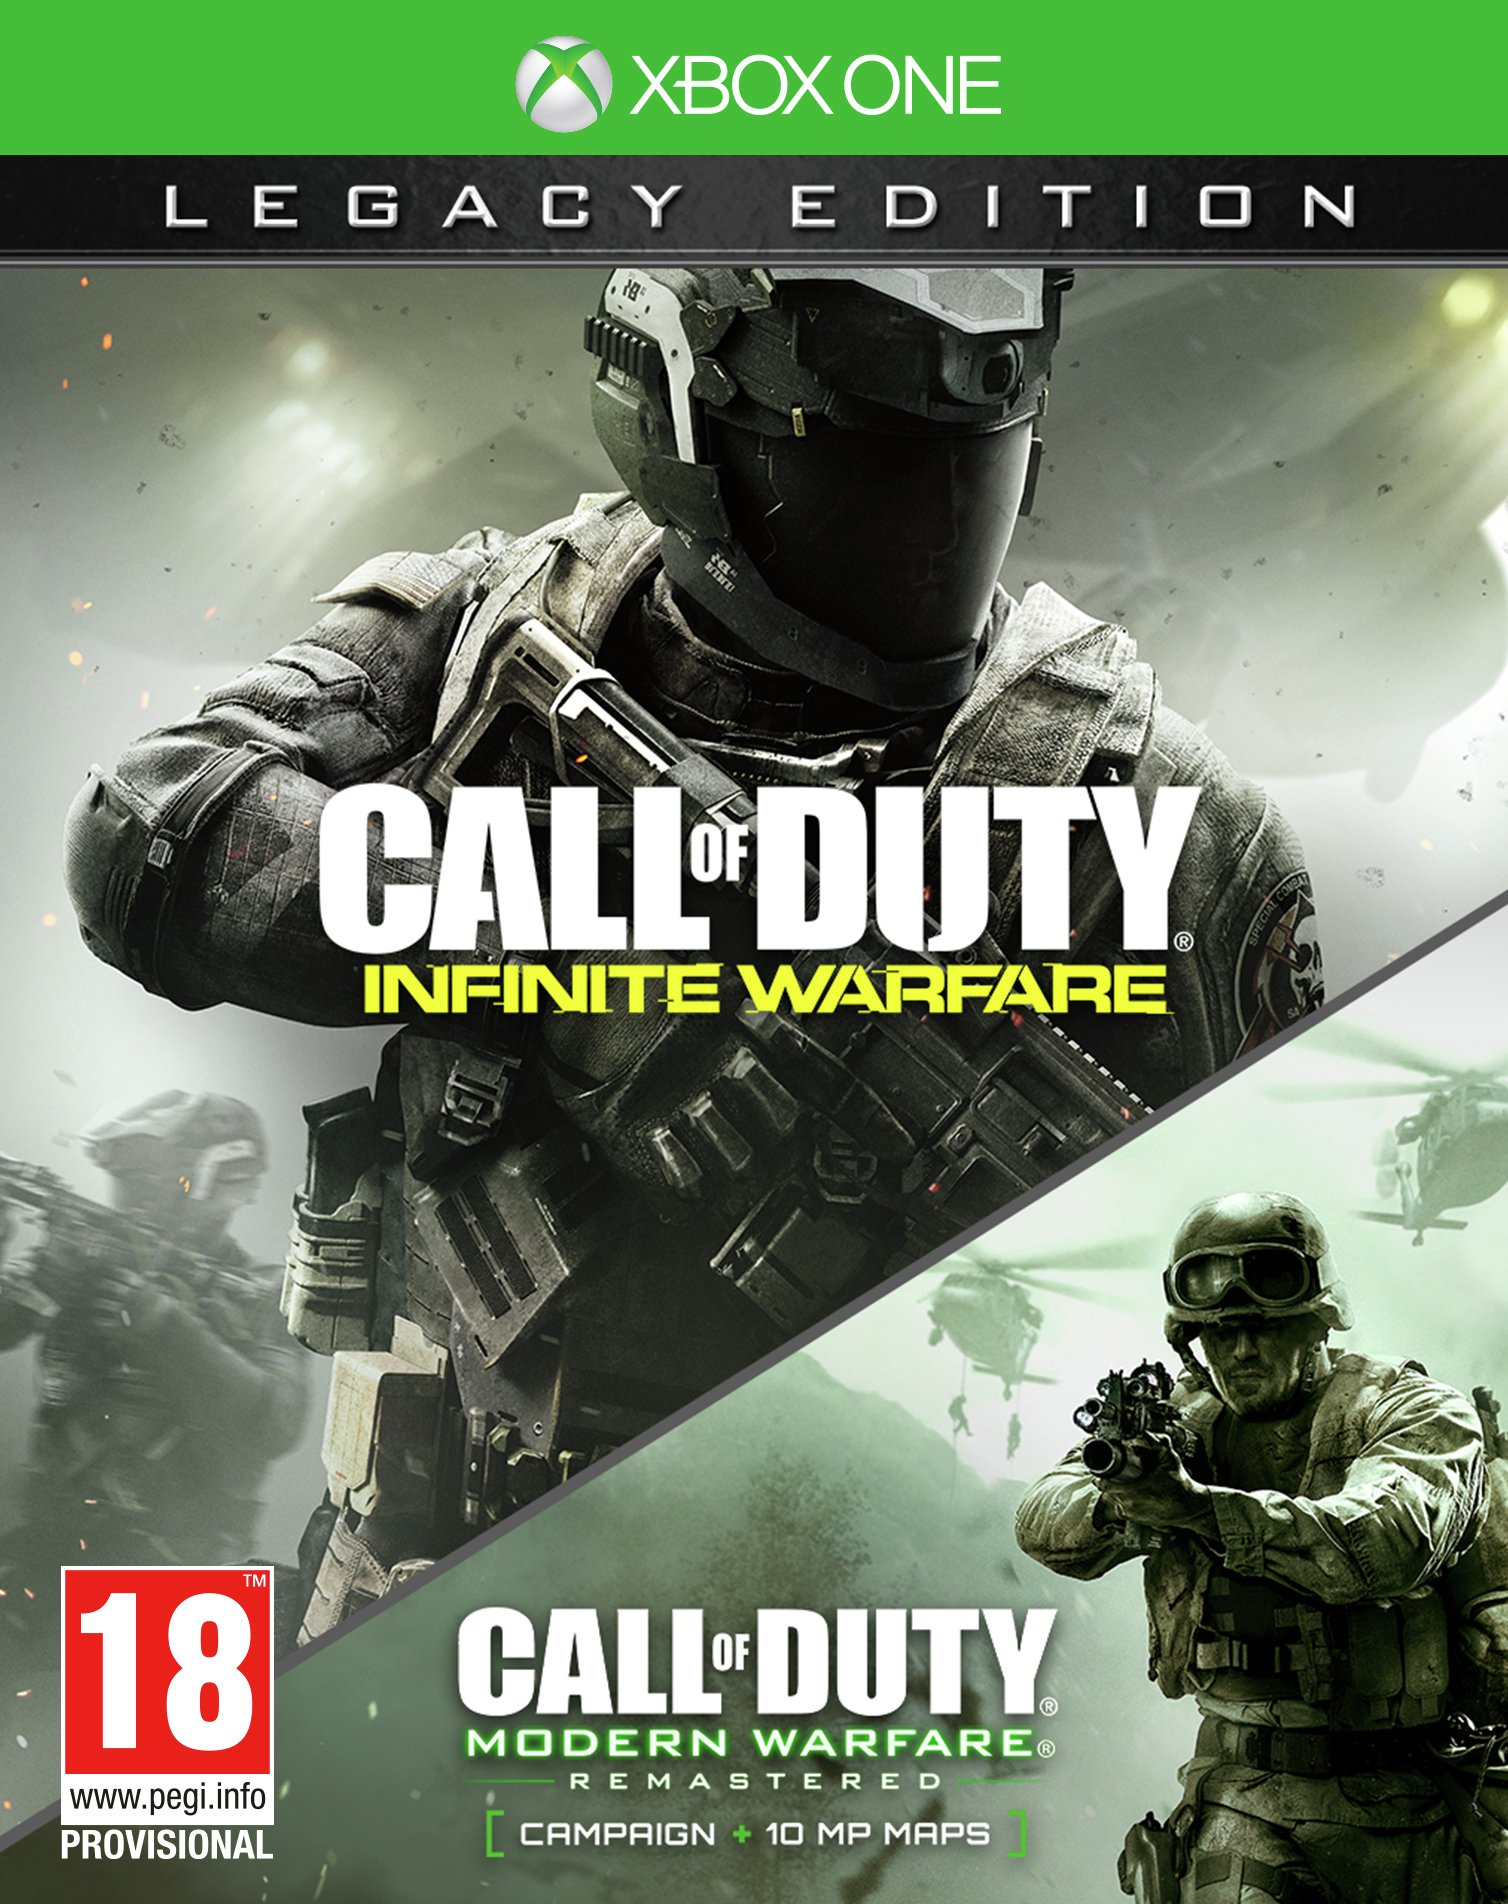 Image of Call of Duty: Infinite Warfare Legacy Edition Xbox One Game.